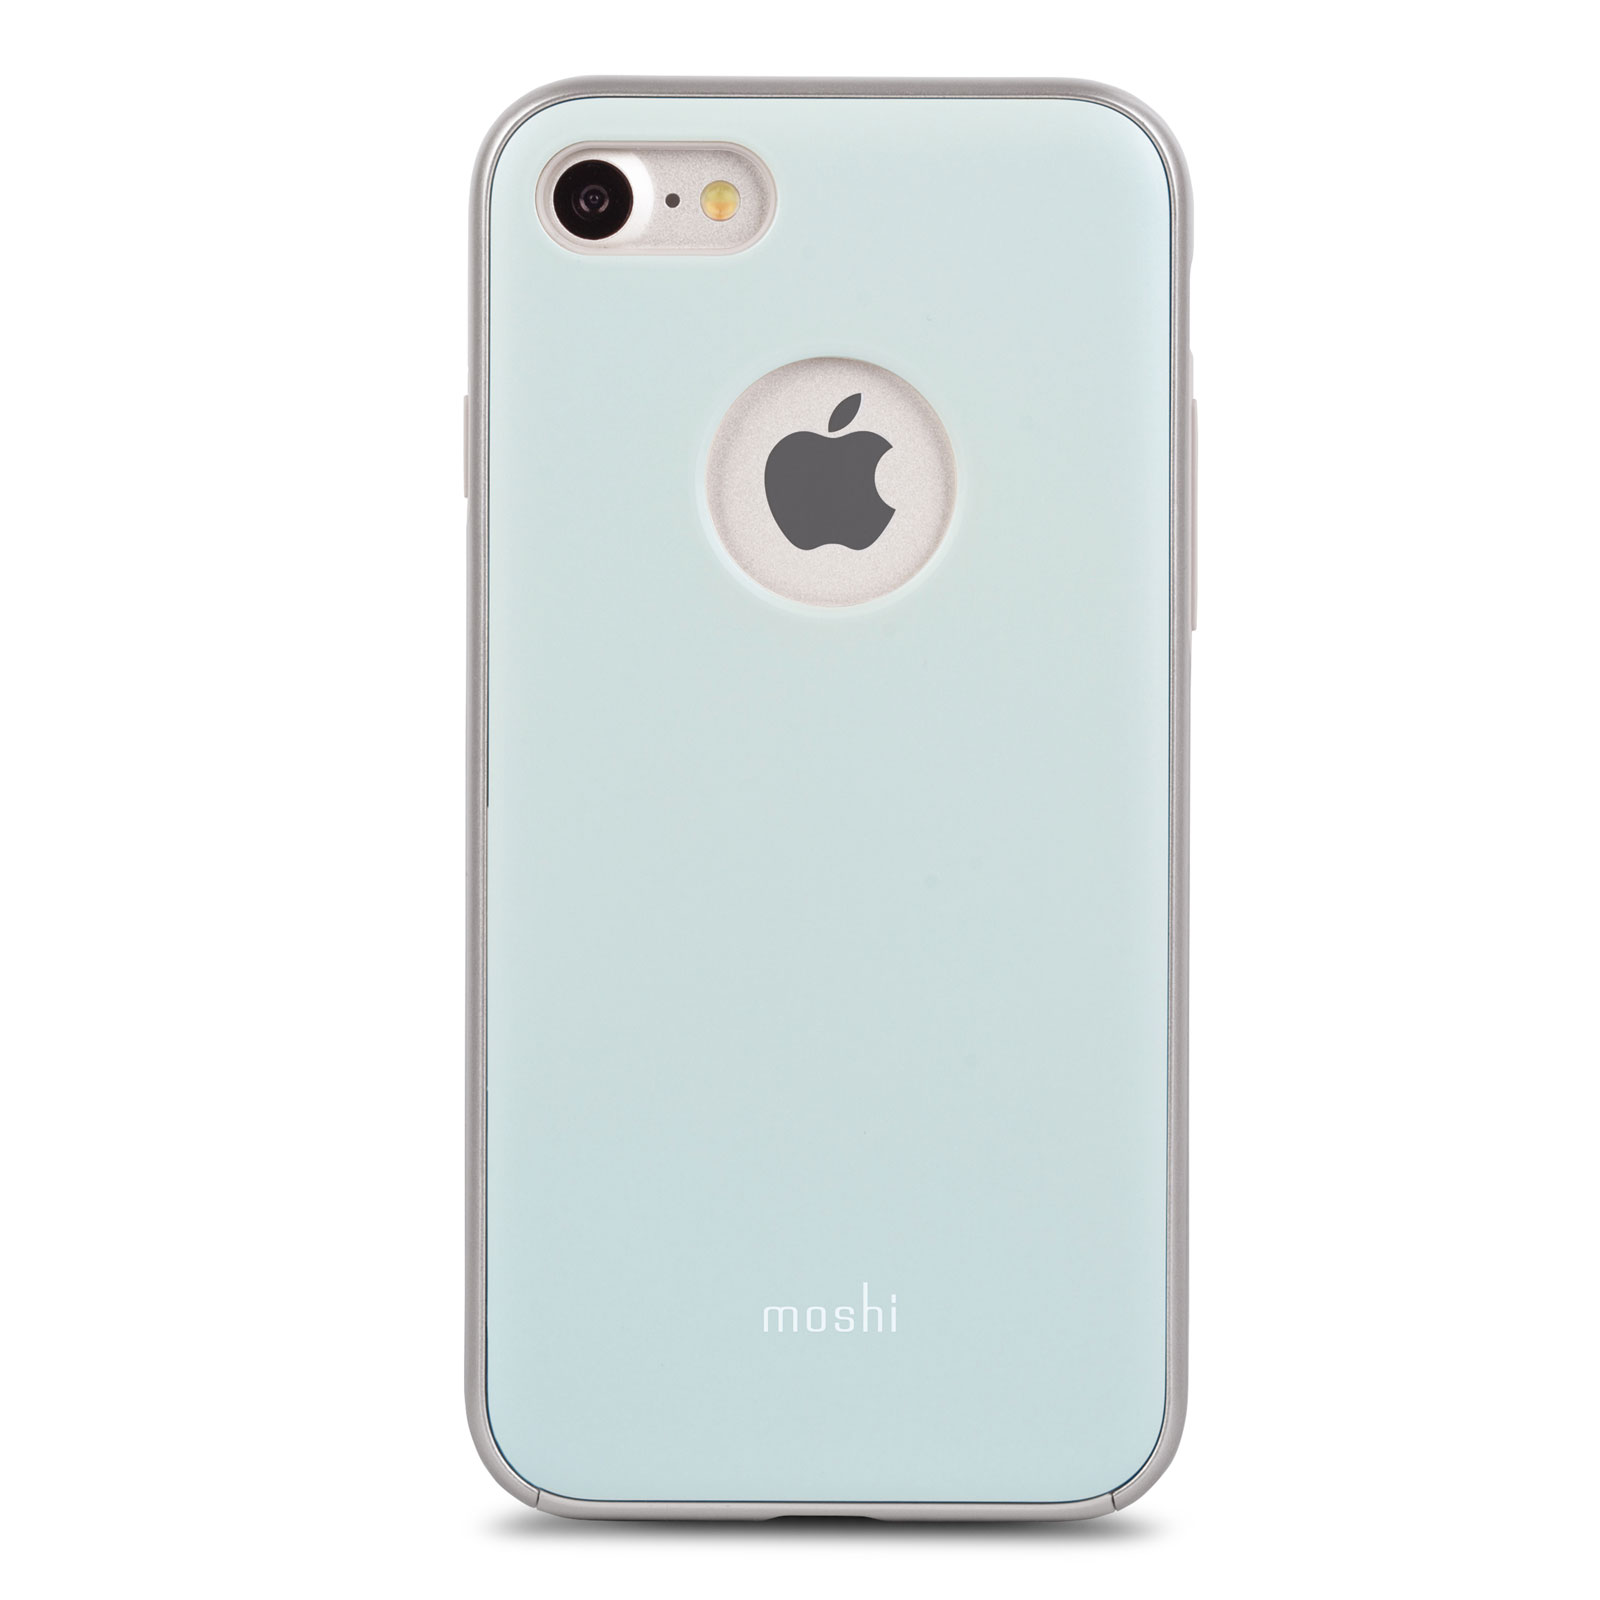 iphone 8 7 case shop iphone covers blue iglaze by moshi. Black Bedroom Furniture Sets. Home Design Ideas